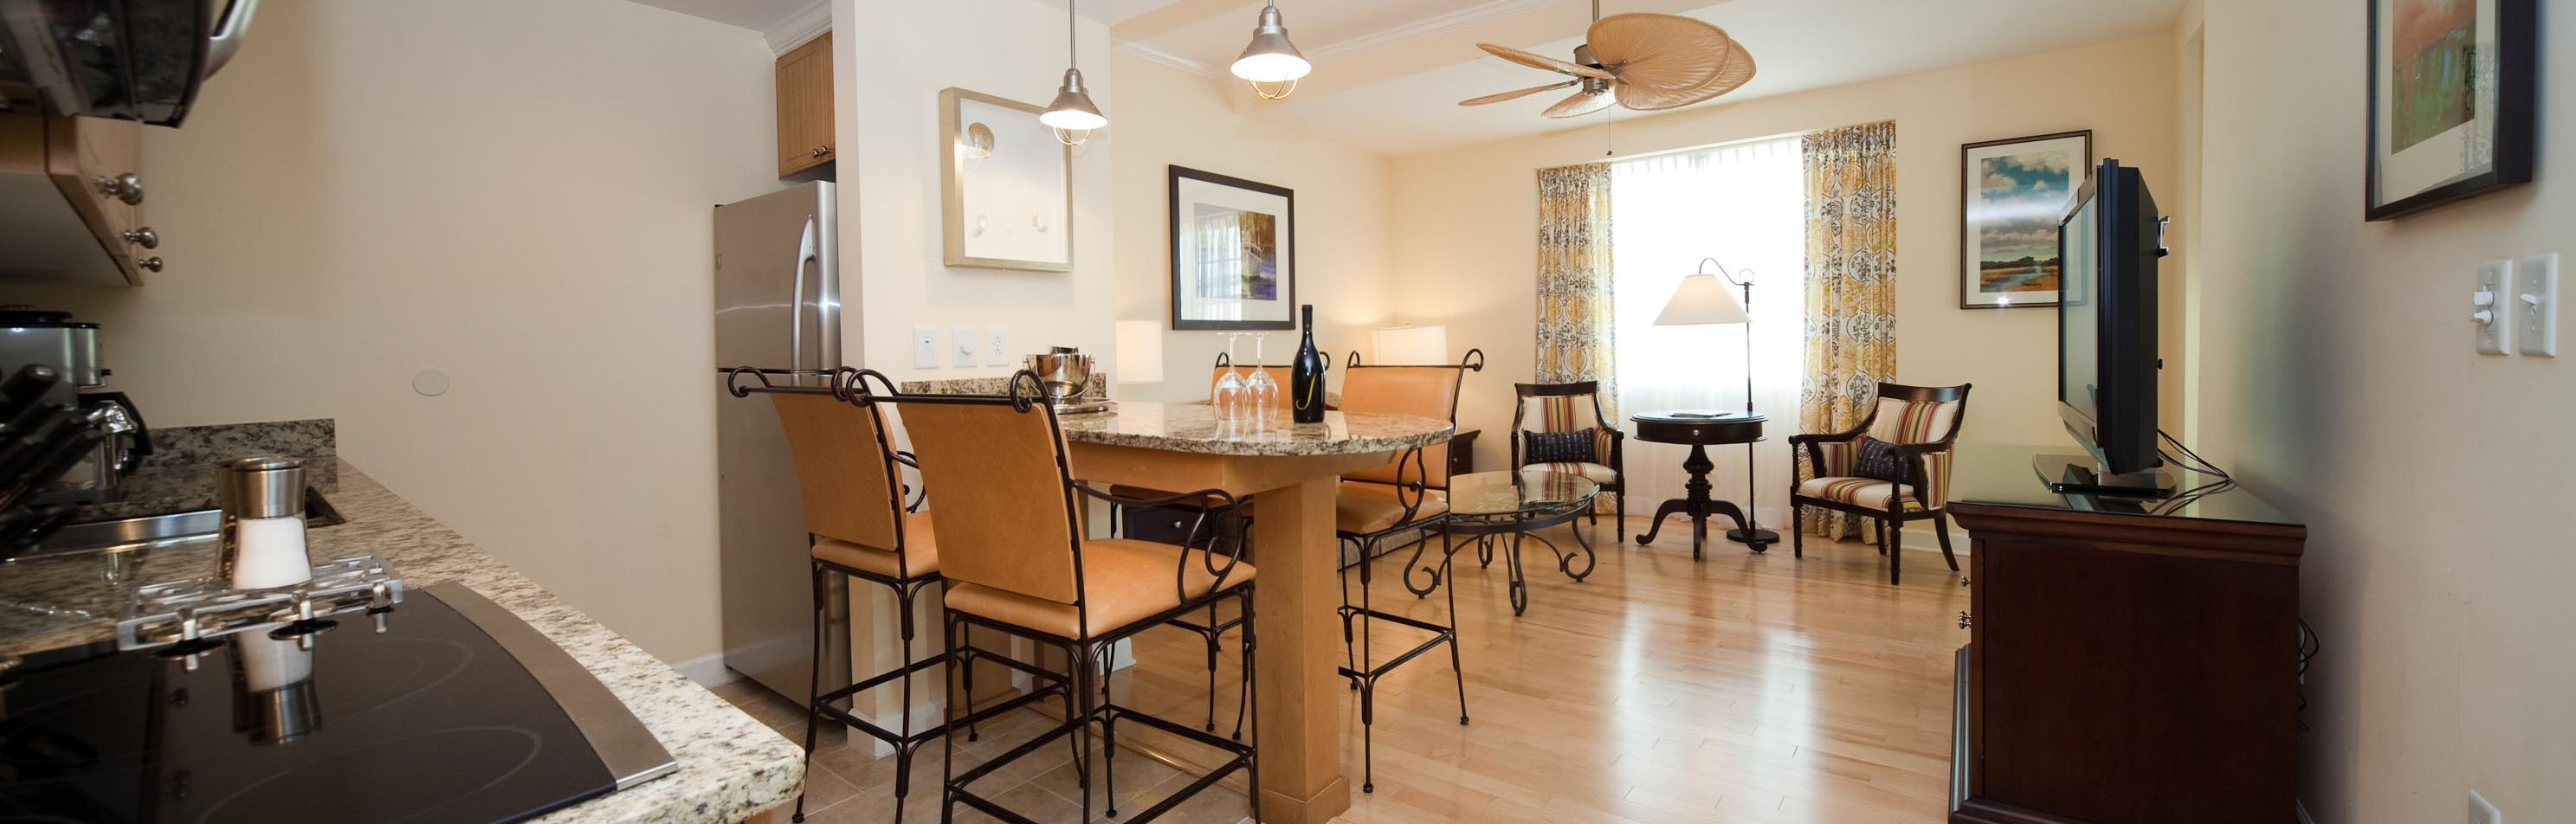 Wild Dunes_Accommodations_Village_1BR_KitchenandLivingRoom1